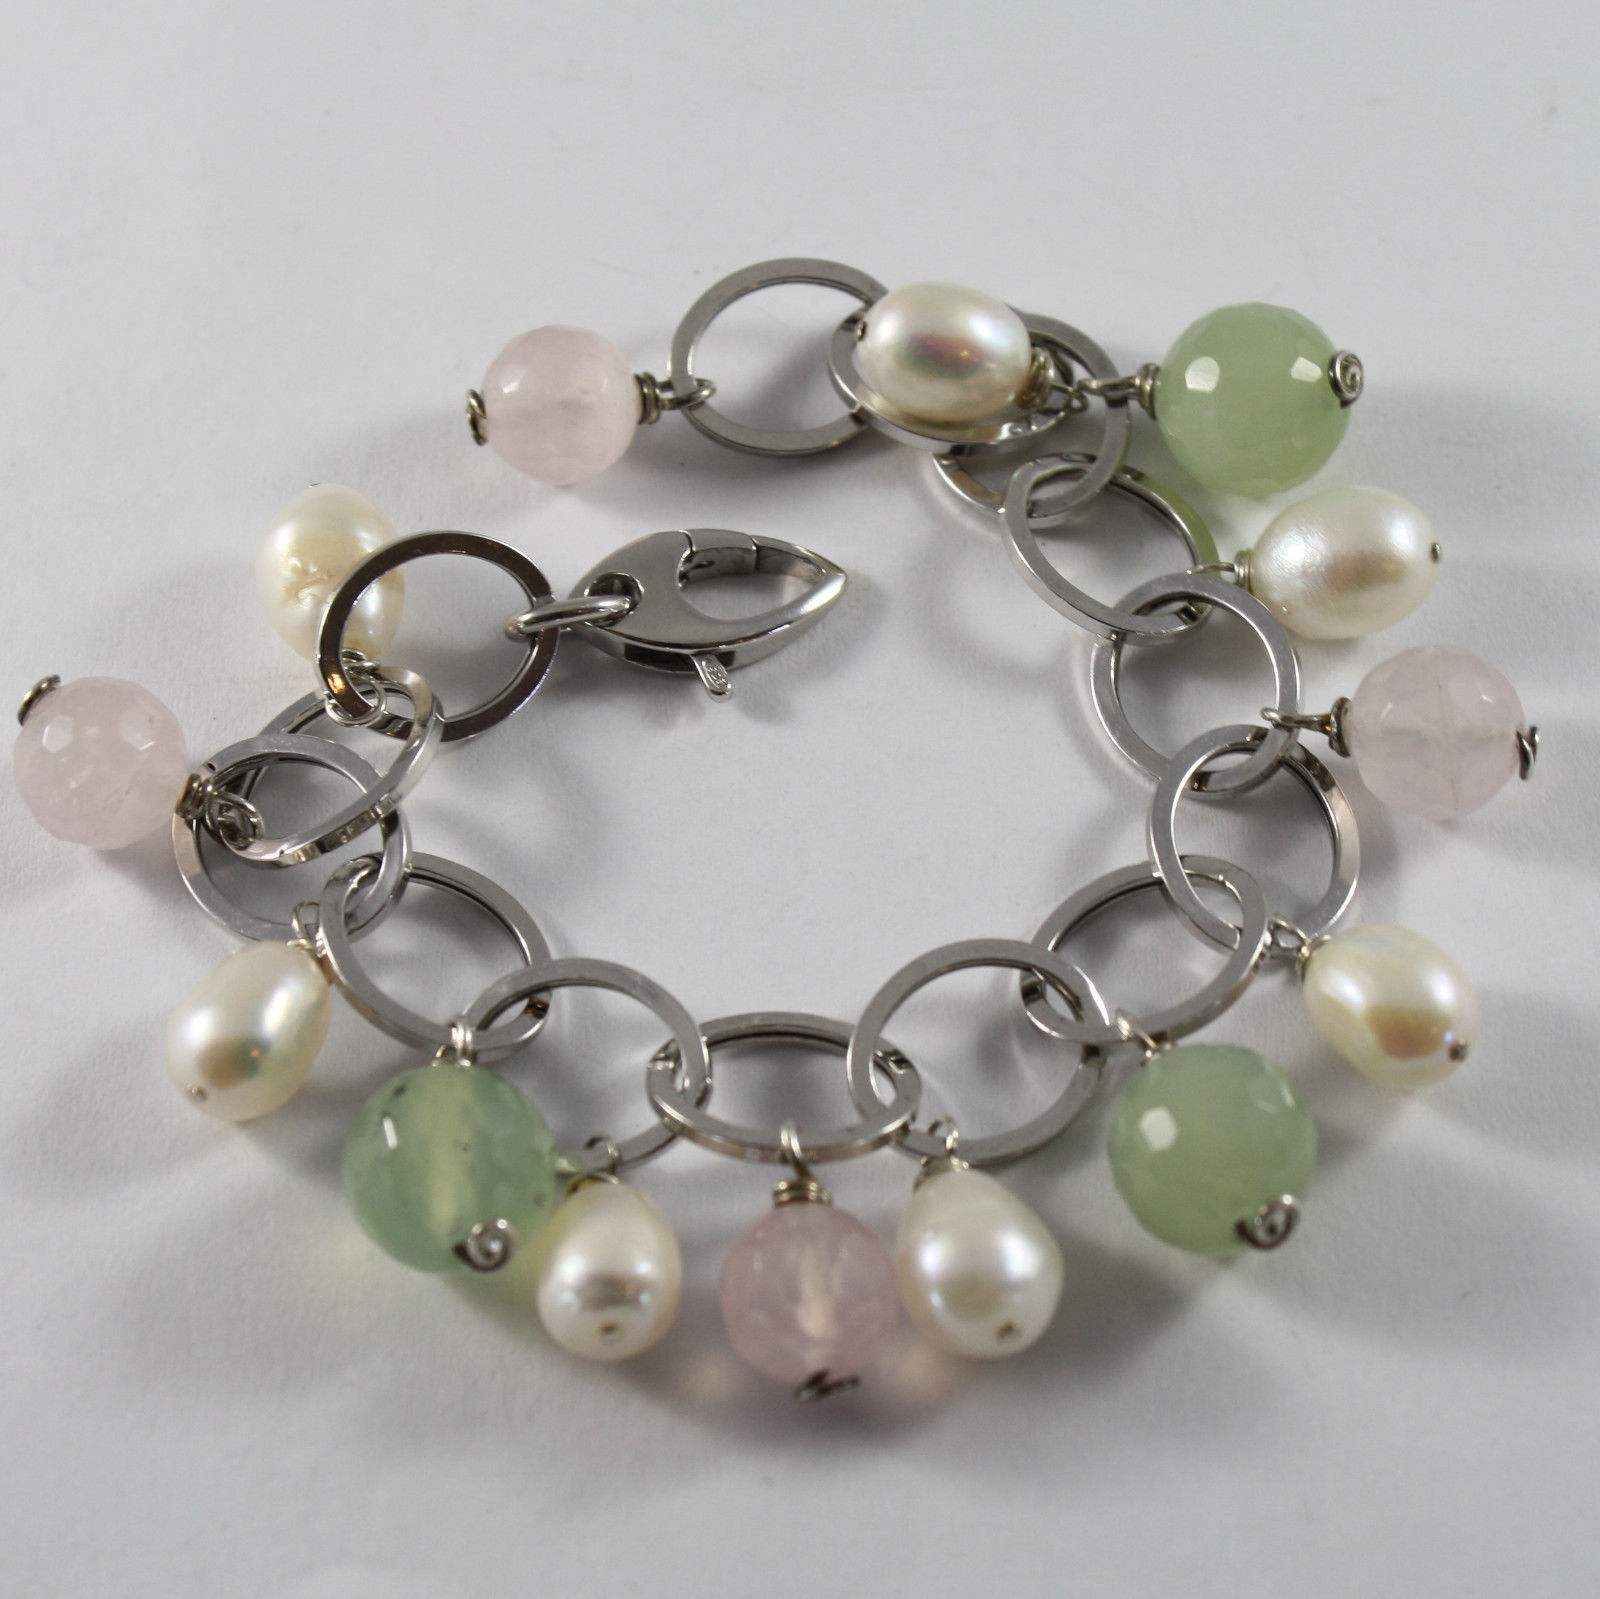 .925 RHODIUM SILVER BRACELET WITH  BAROQUE WHITE PEARLS, JADE AND PINK QUARTZ